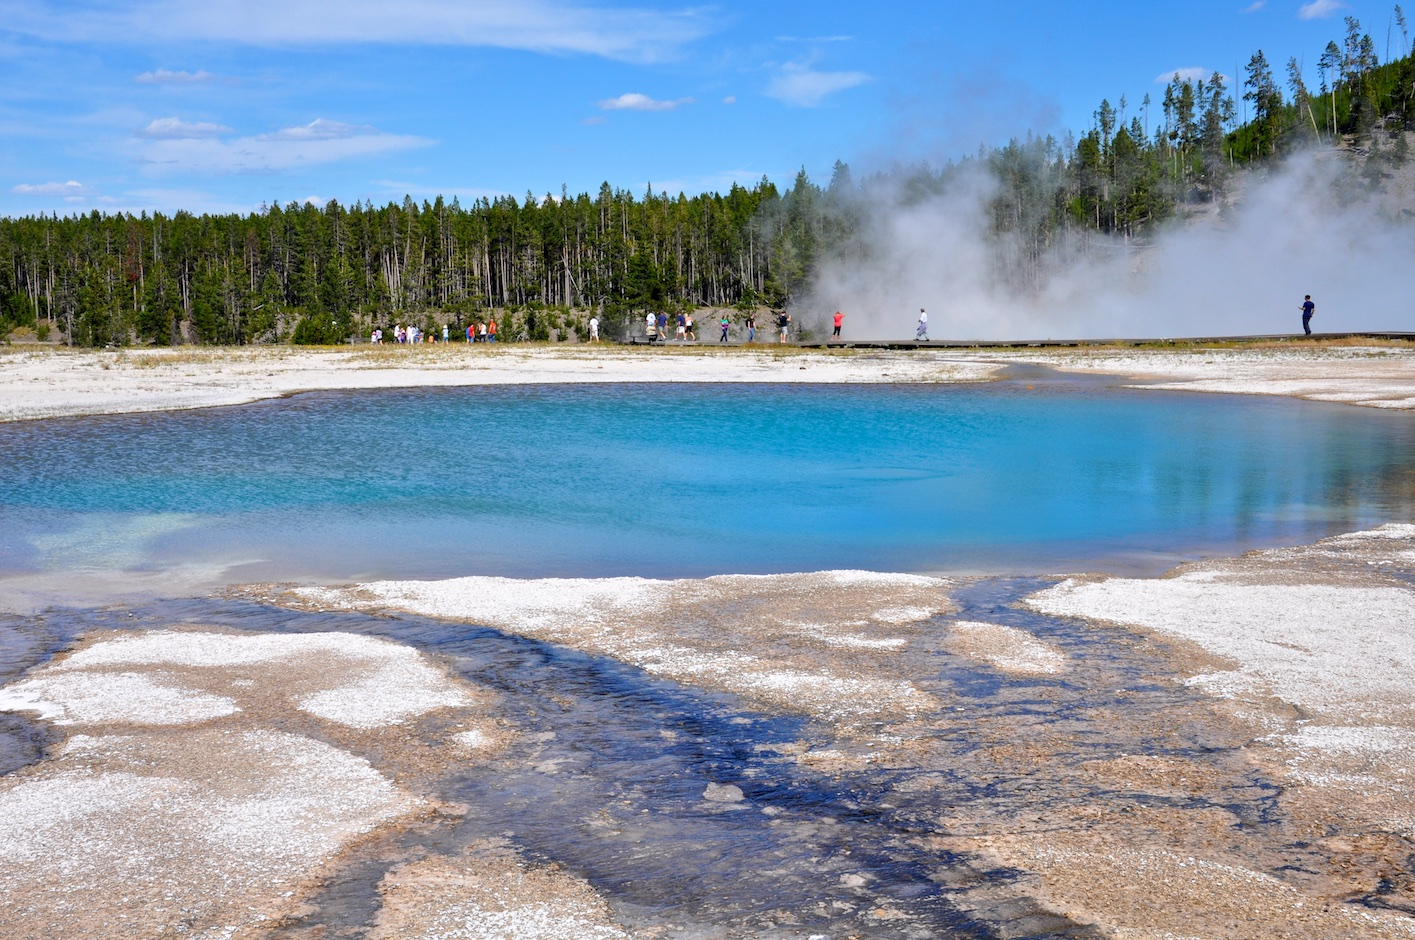 Turquoise Pool, Midway Geyser Basin - Yellowstone National Park